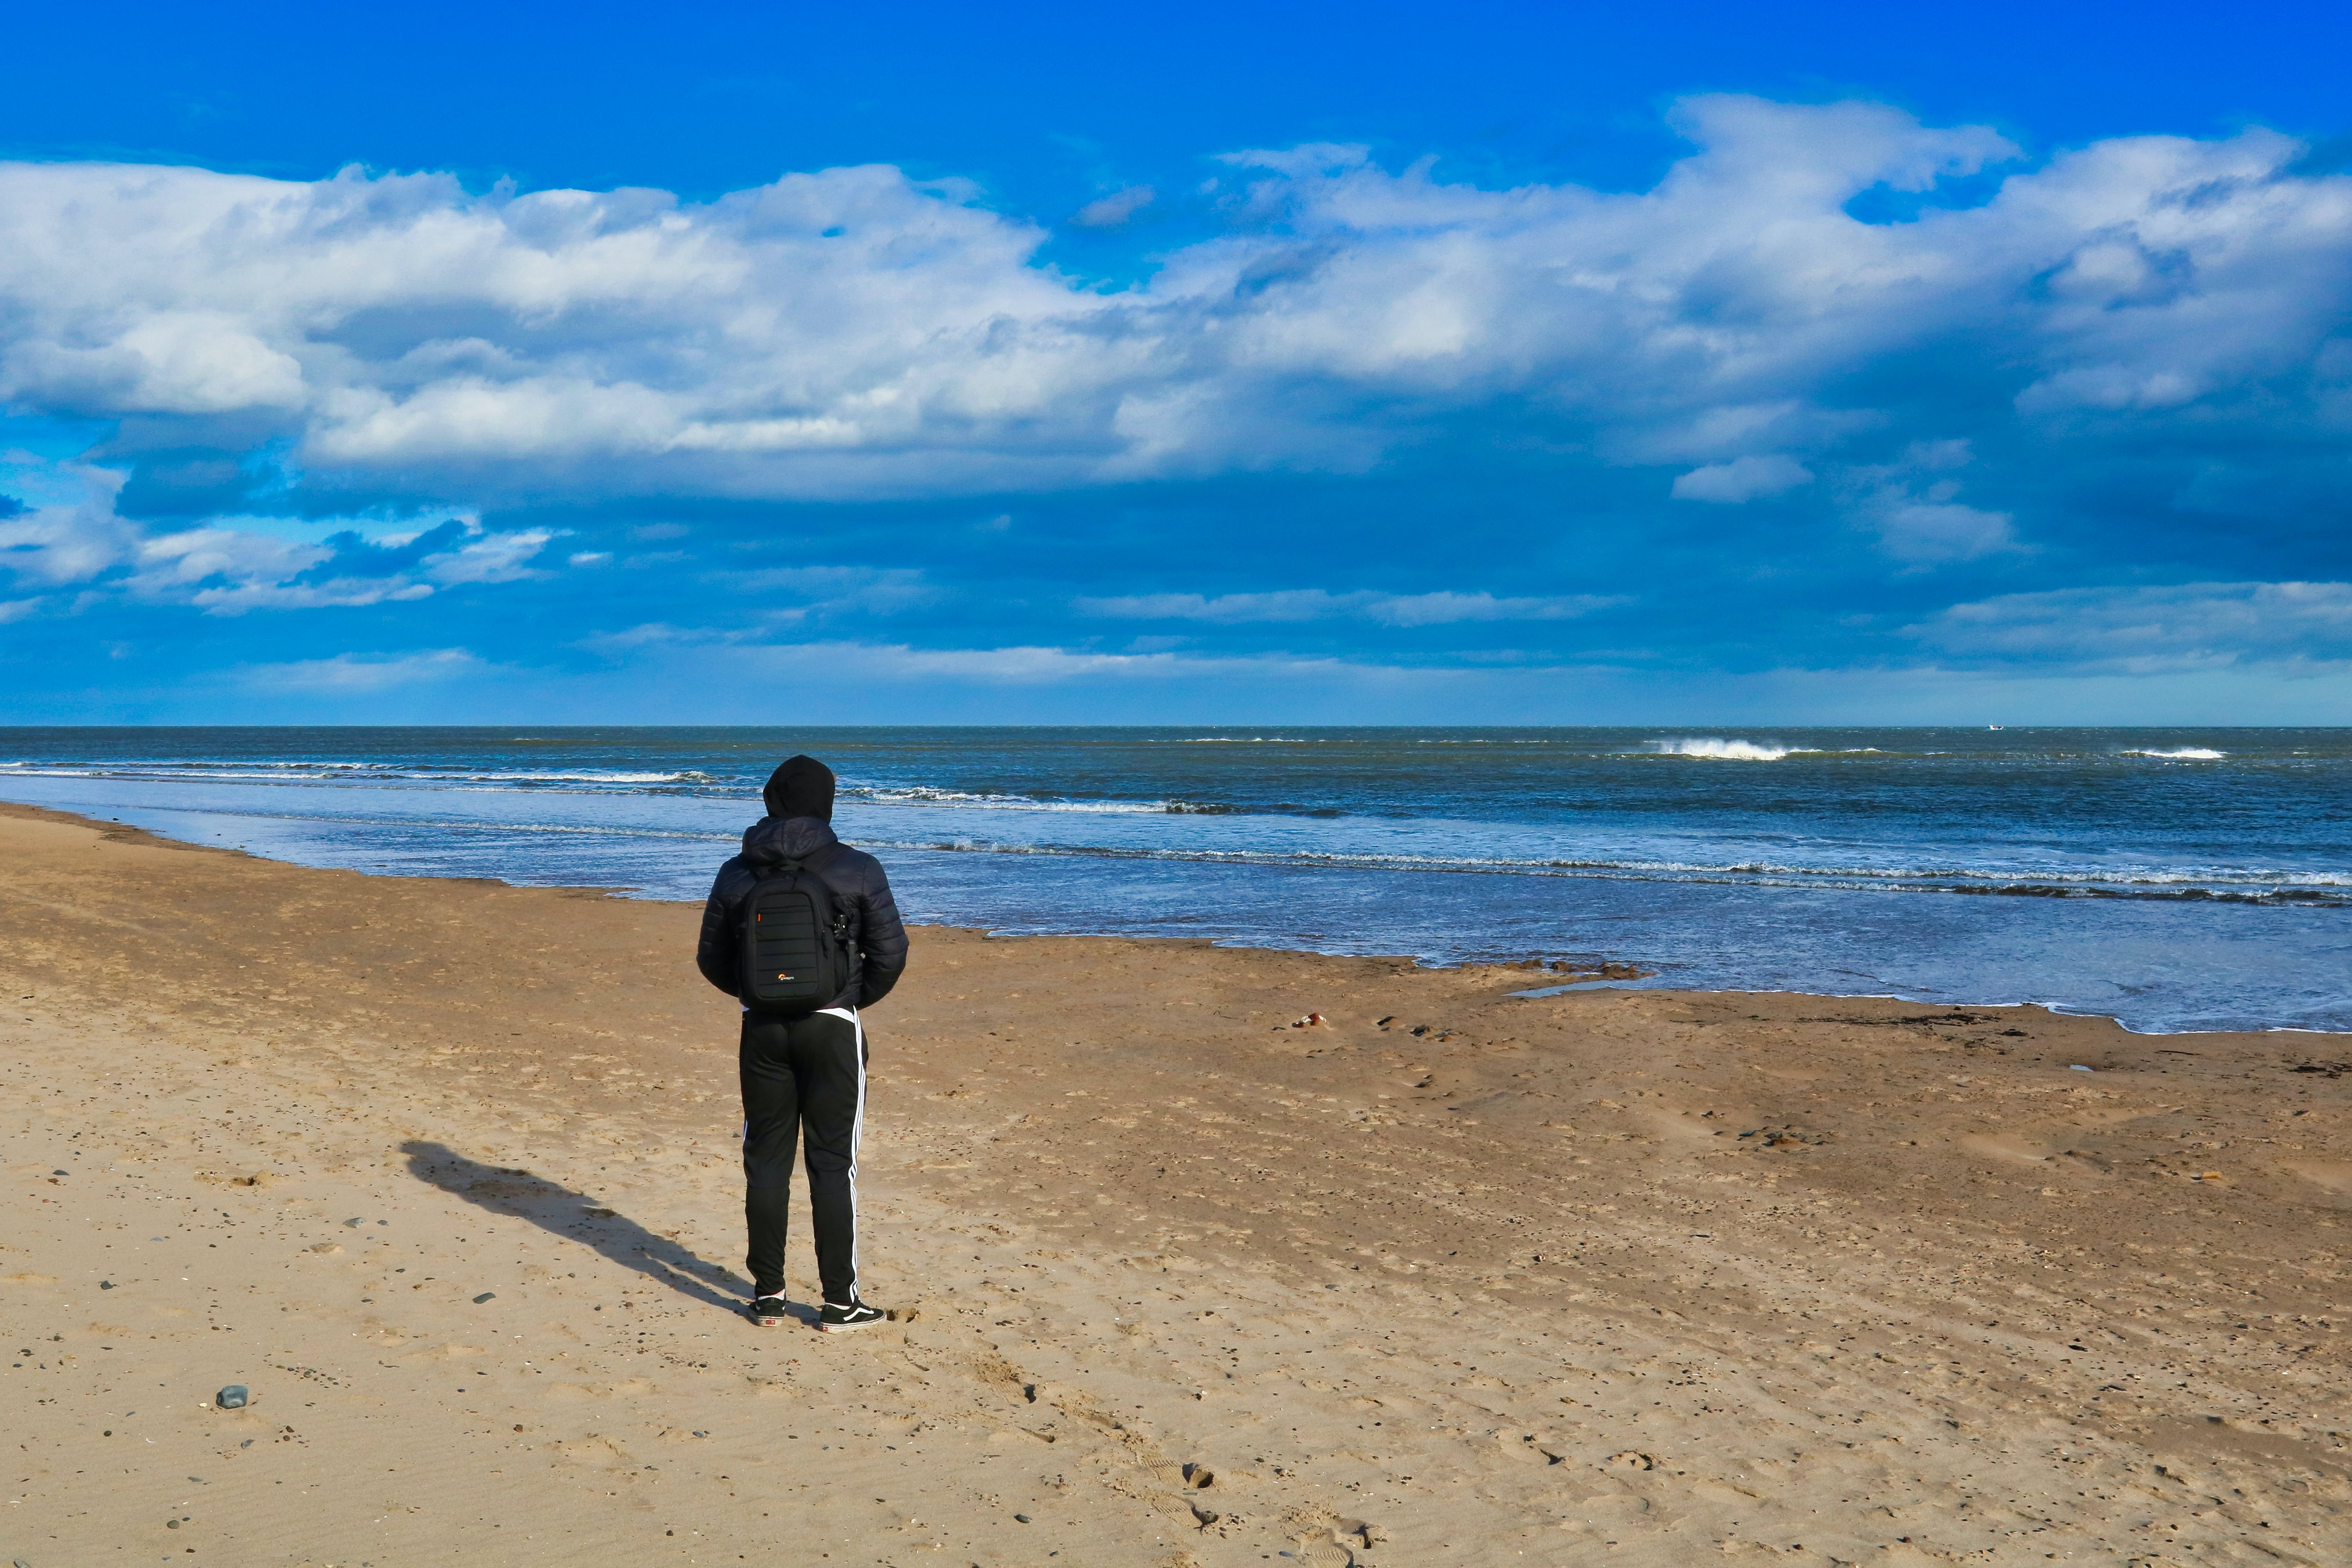 Free stock photo of Alnmouth, Alnmouth Beach, beach, black rucksack